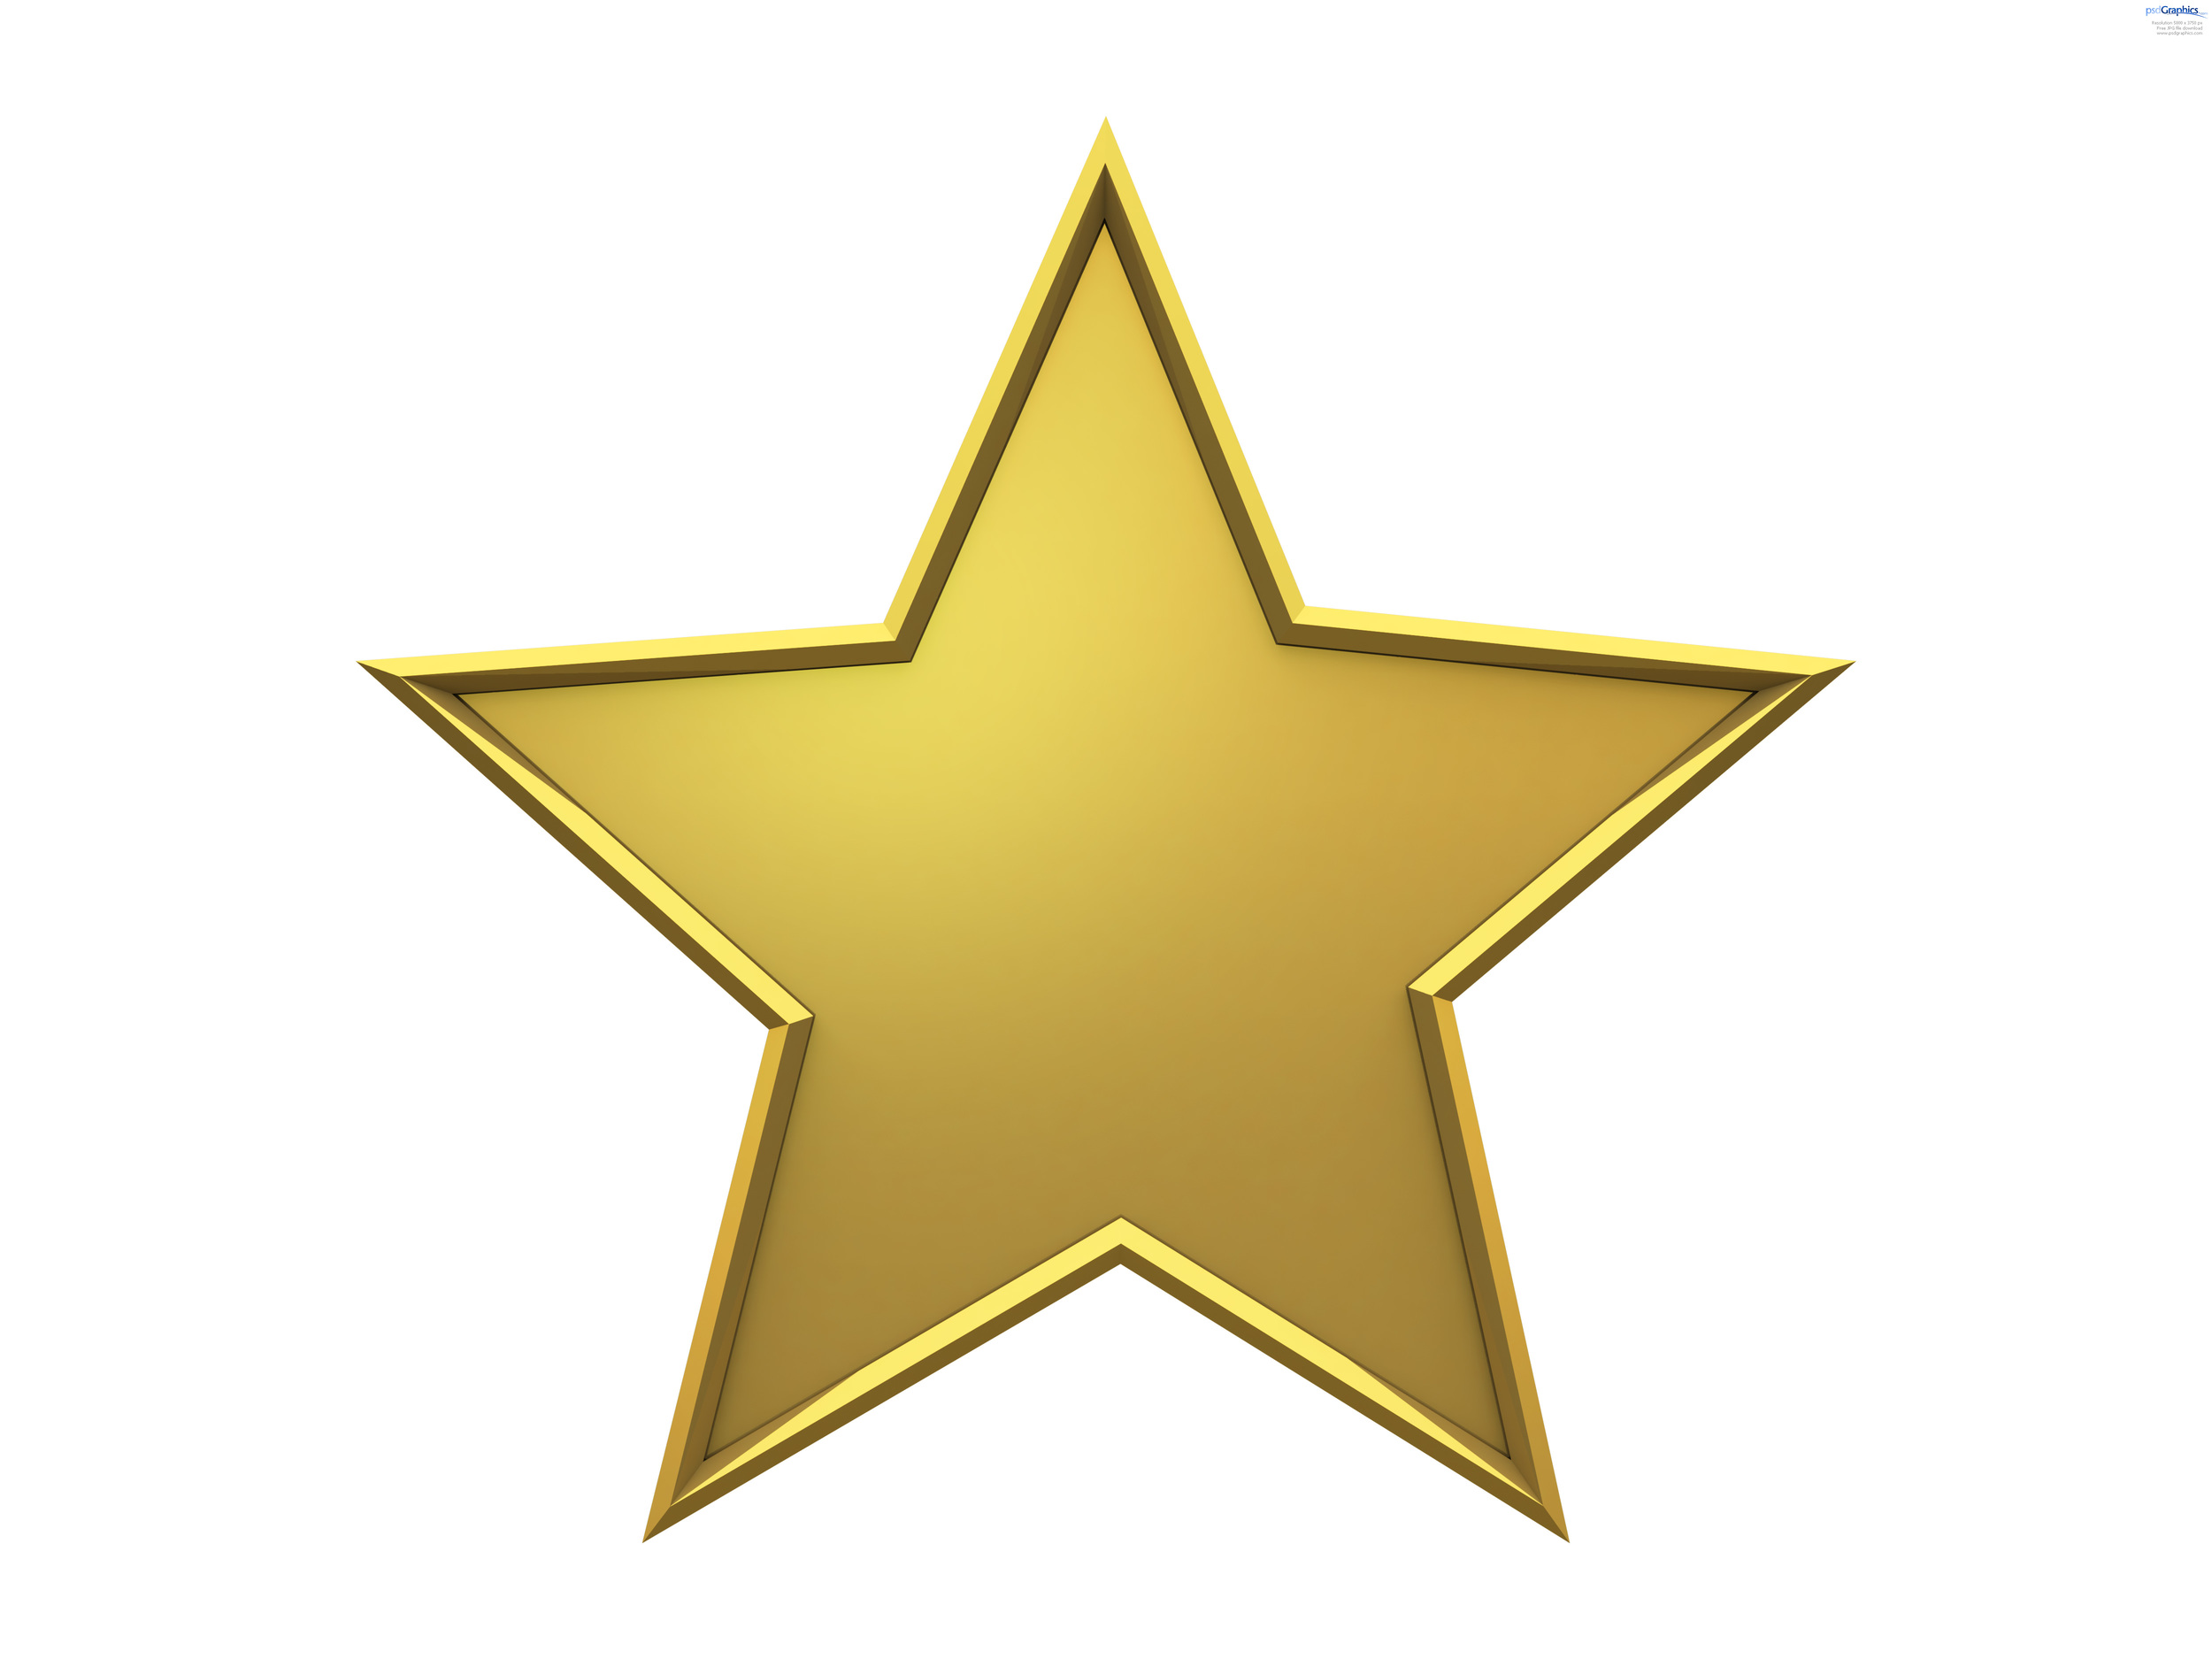 gold-star-graphic.jpg